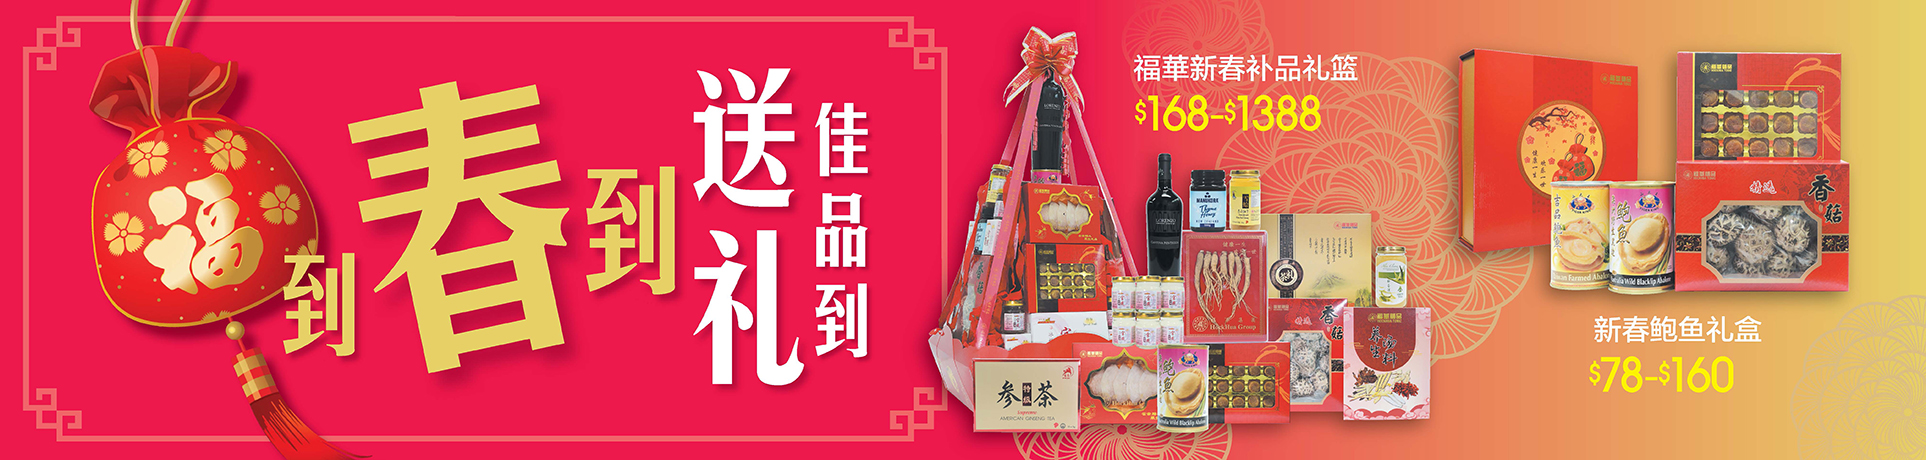 HHT_Homepage Top Banner_1920x460_CNY_FA_C